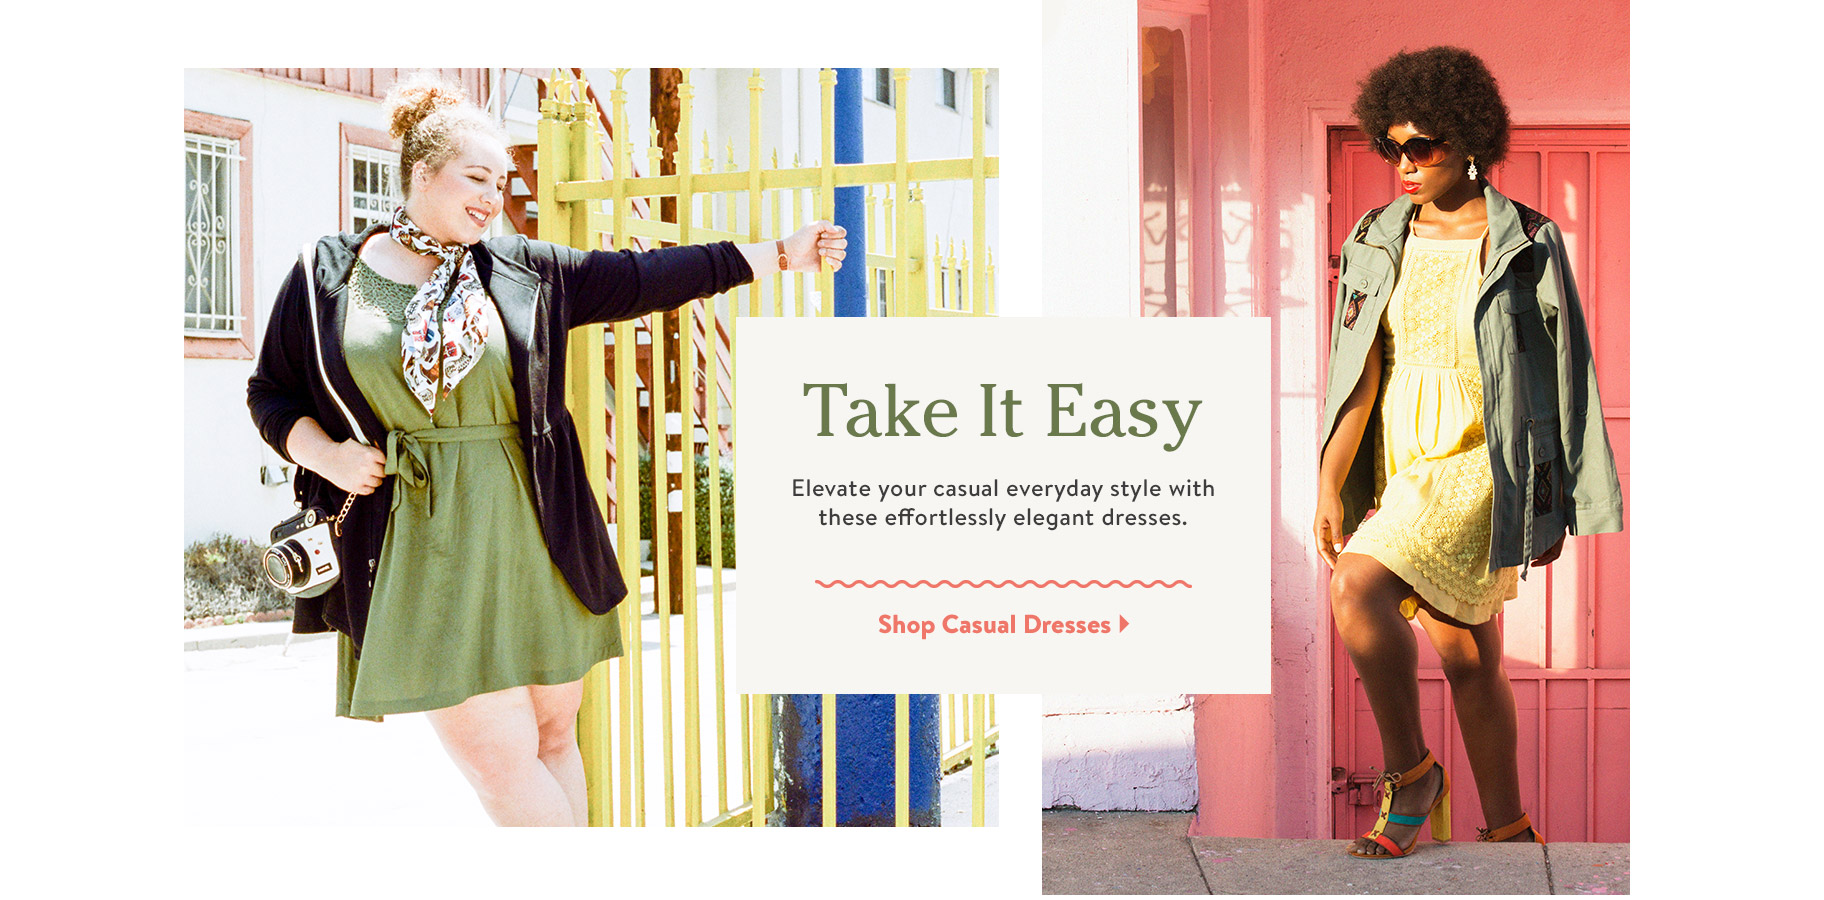 Take It Easy. Elevate your casual everyday style with these effortlessly elegant dresses. Shop Casual Dresses.